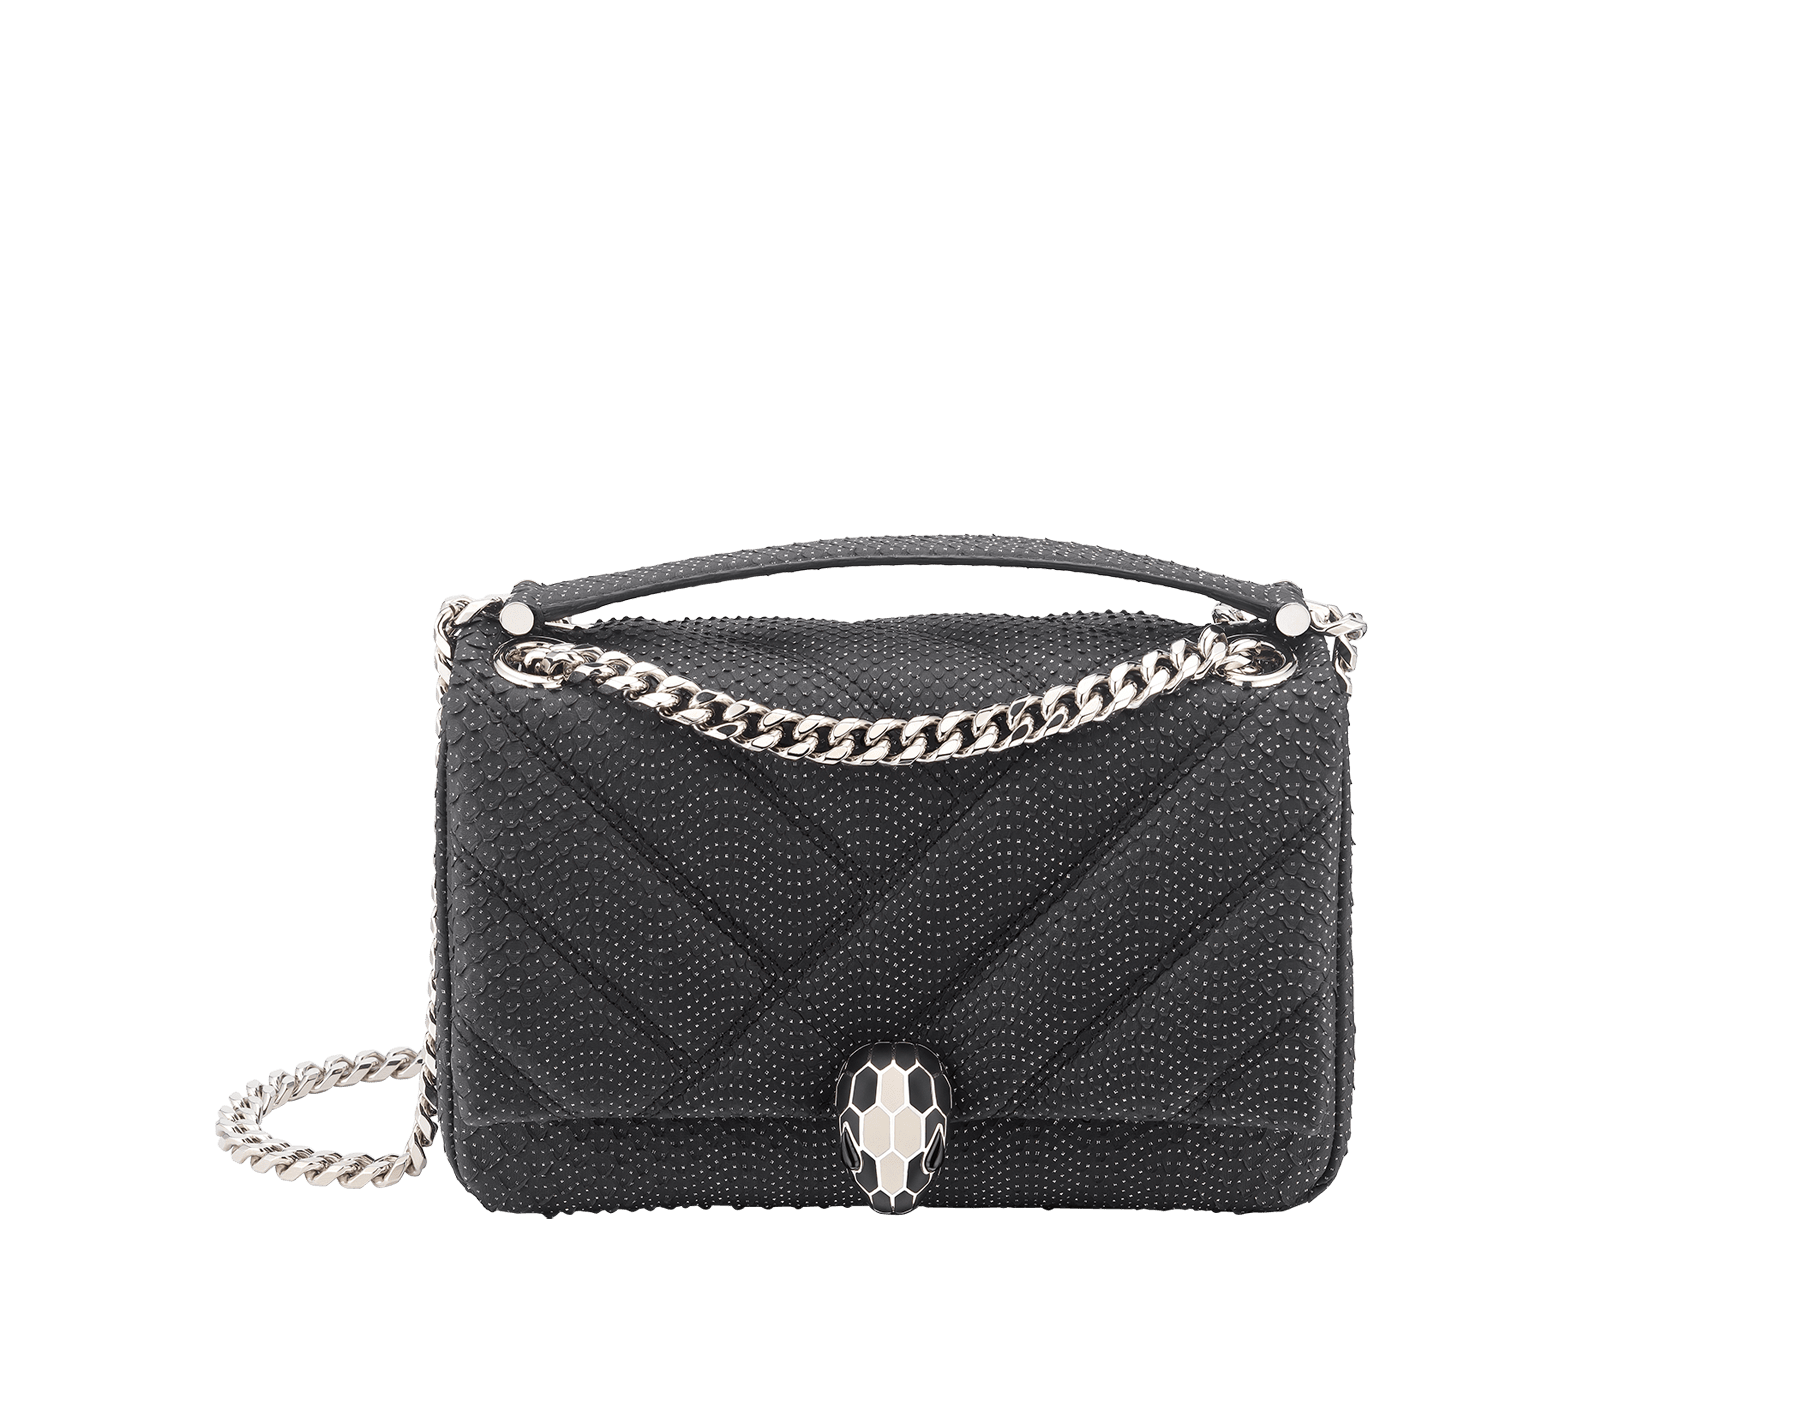 Serpenti Cabochon shoulder bag in soft matelassé black and white fil coupé python skin with graphic motif. Snakehead closure in palladium plated brass decorated with matte black and white enamel, and black onyx eyes. 288614 image 1